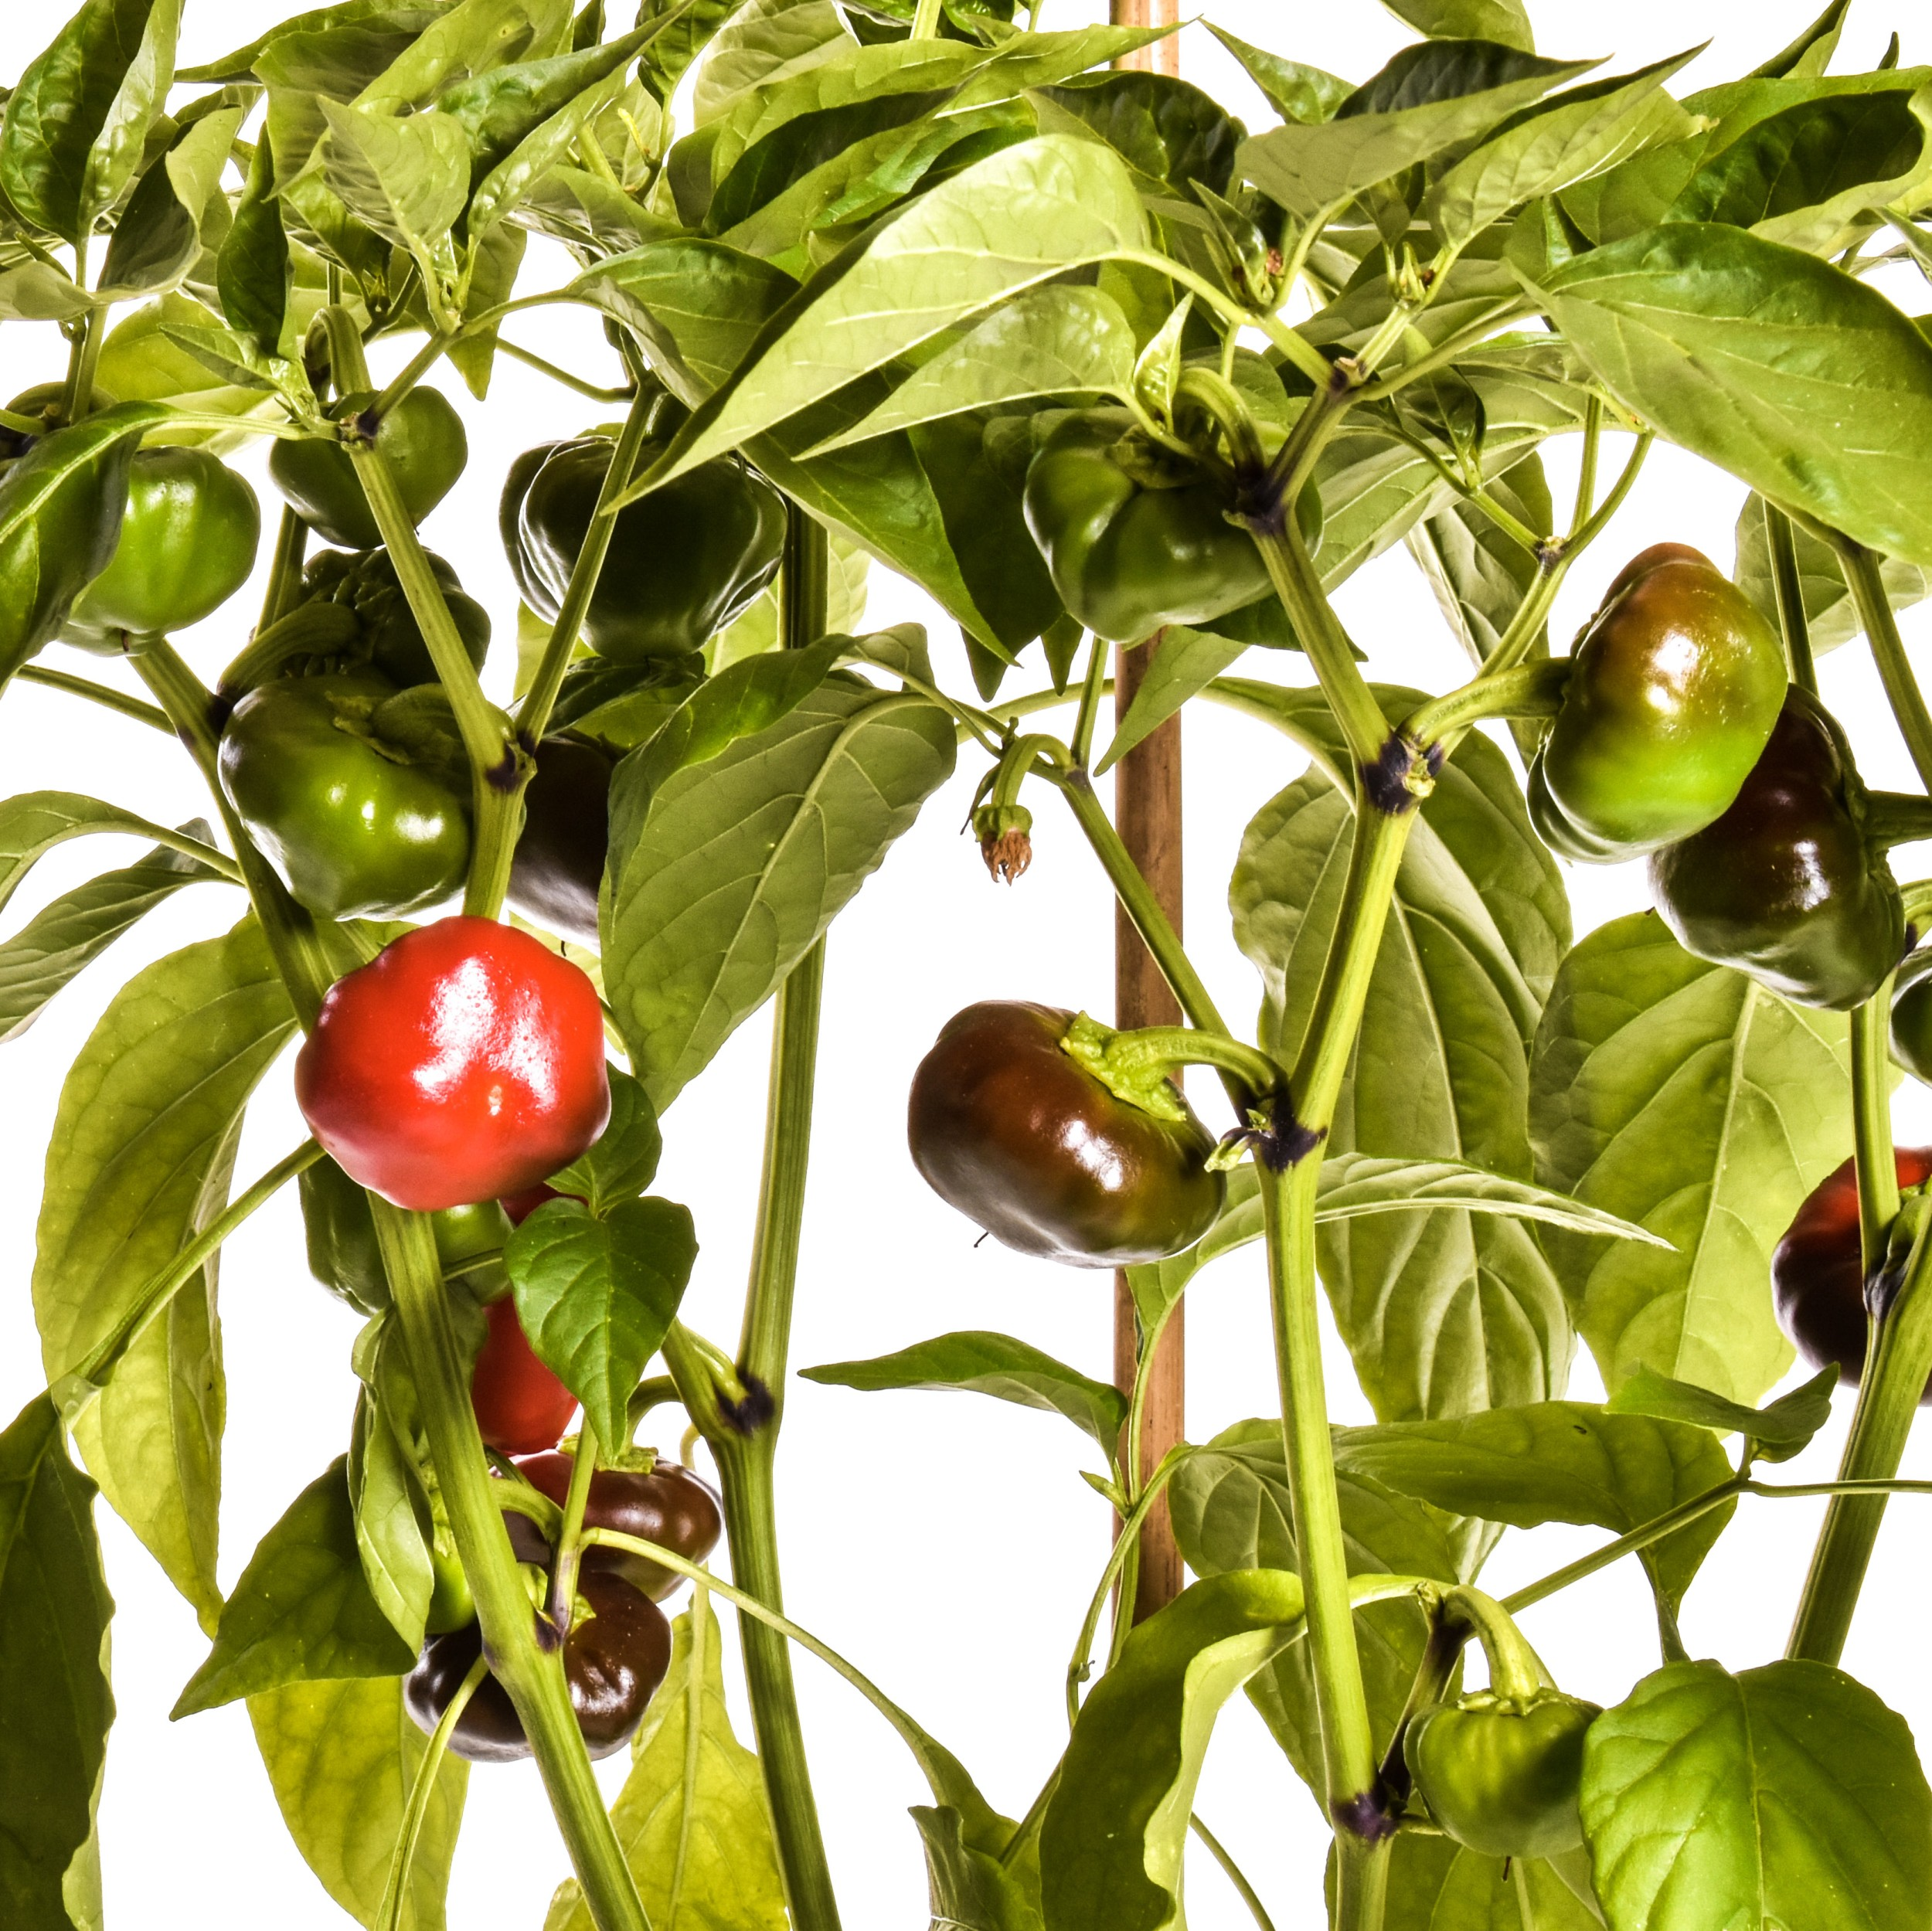 Product plant seeds of trees and bushes, seeds in fruits